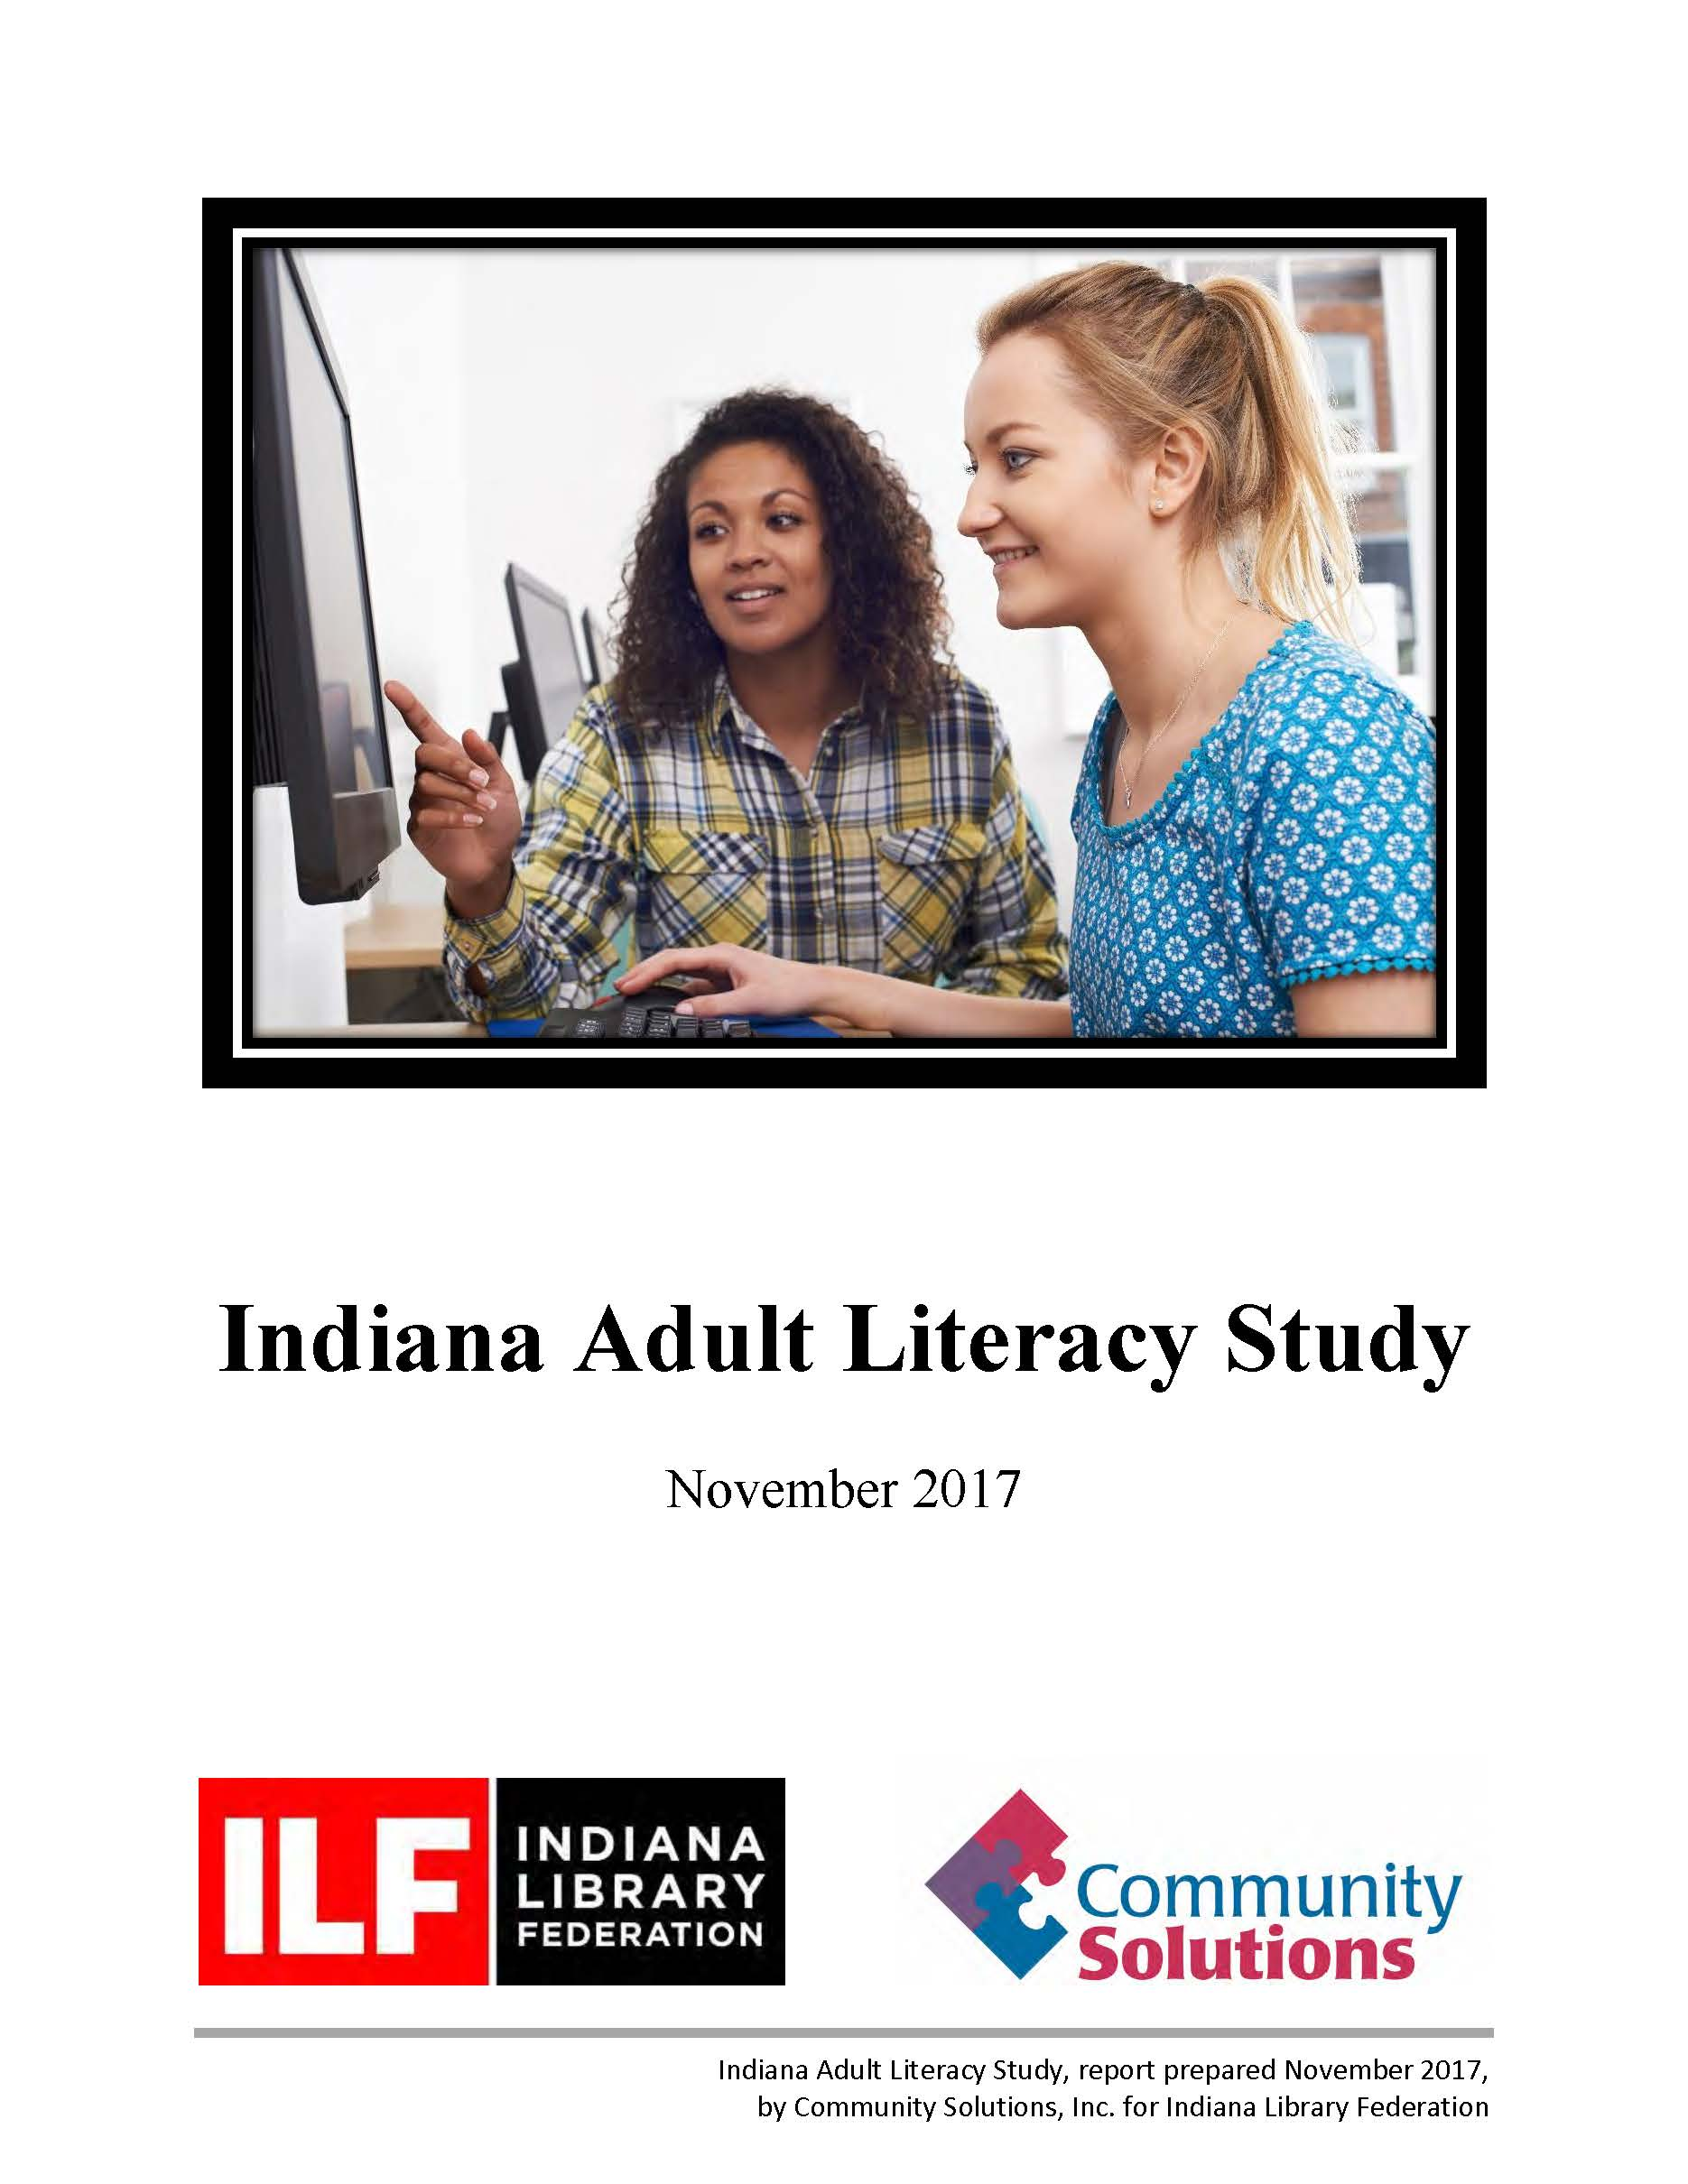 Indiana Adult Literacy Study front page